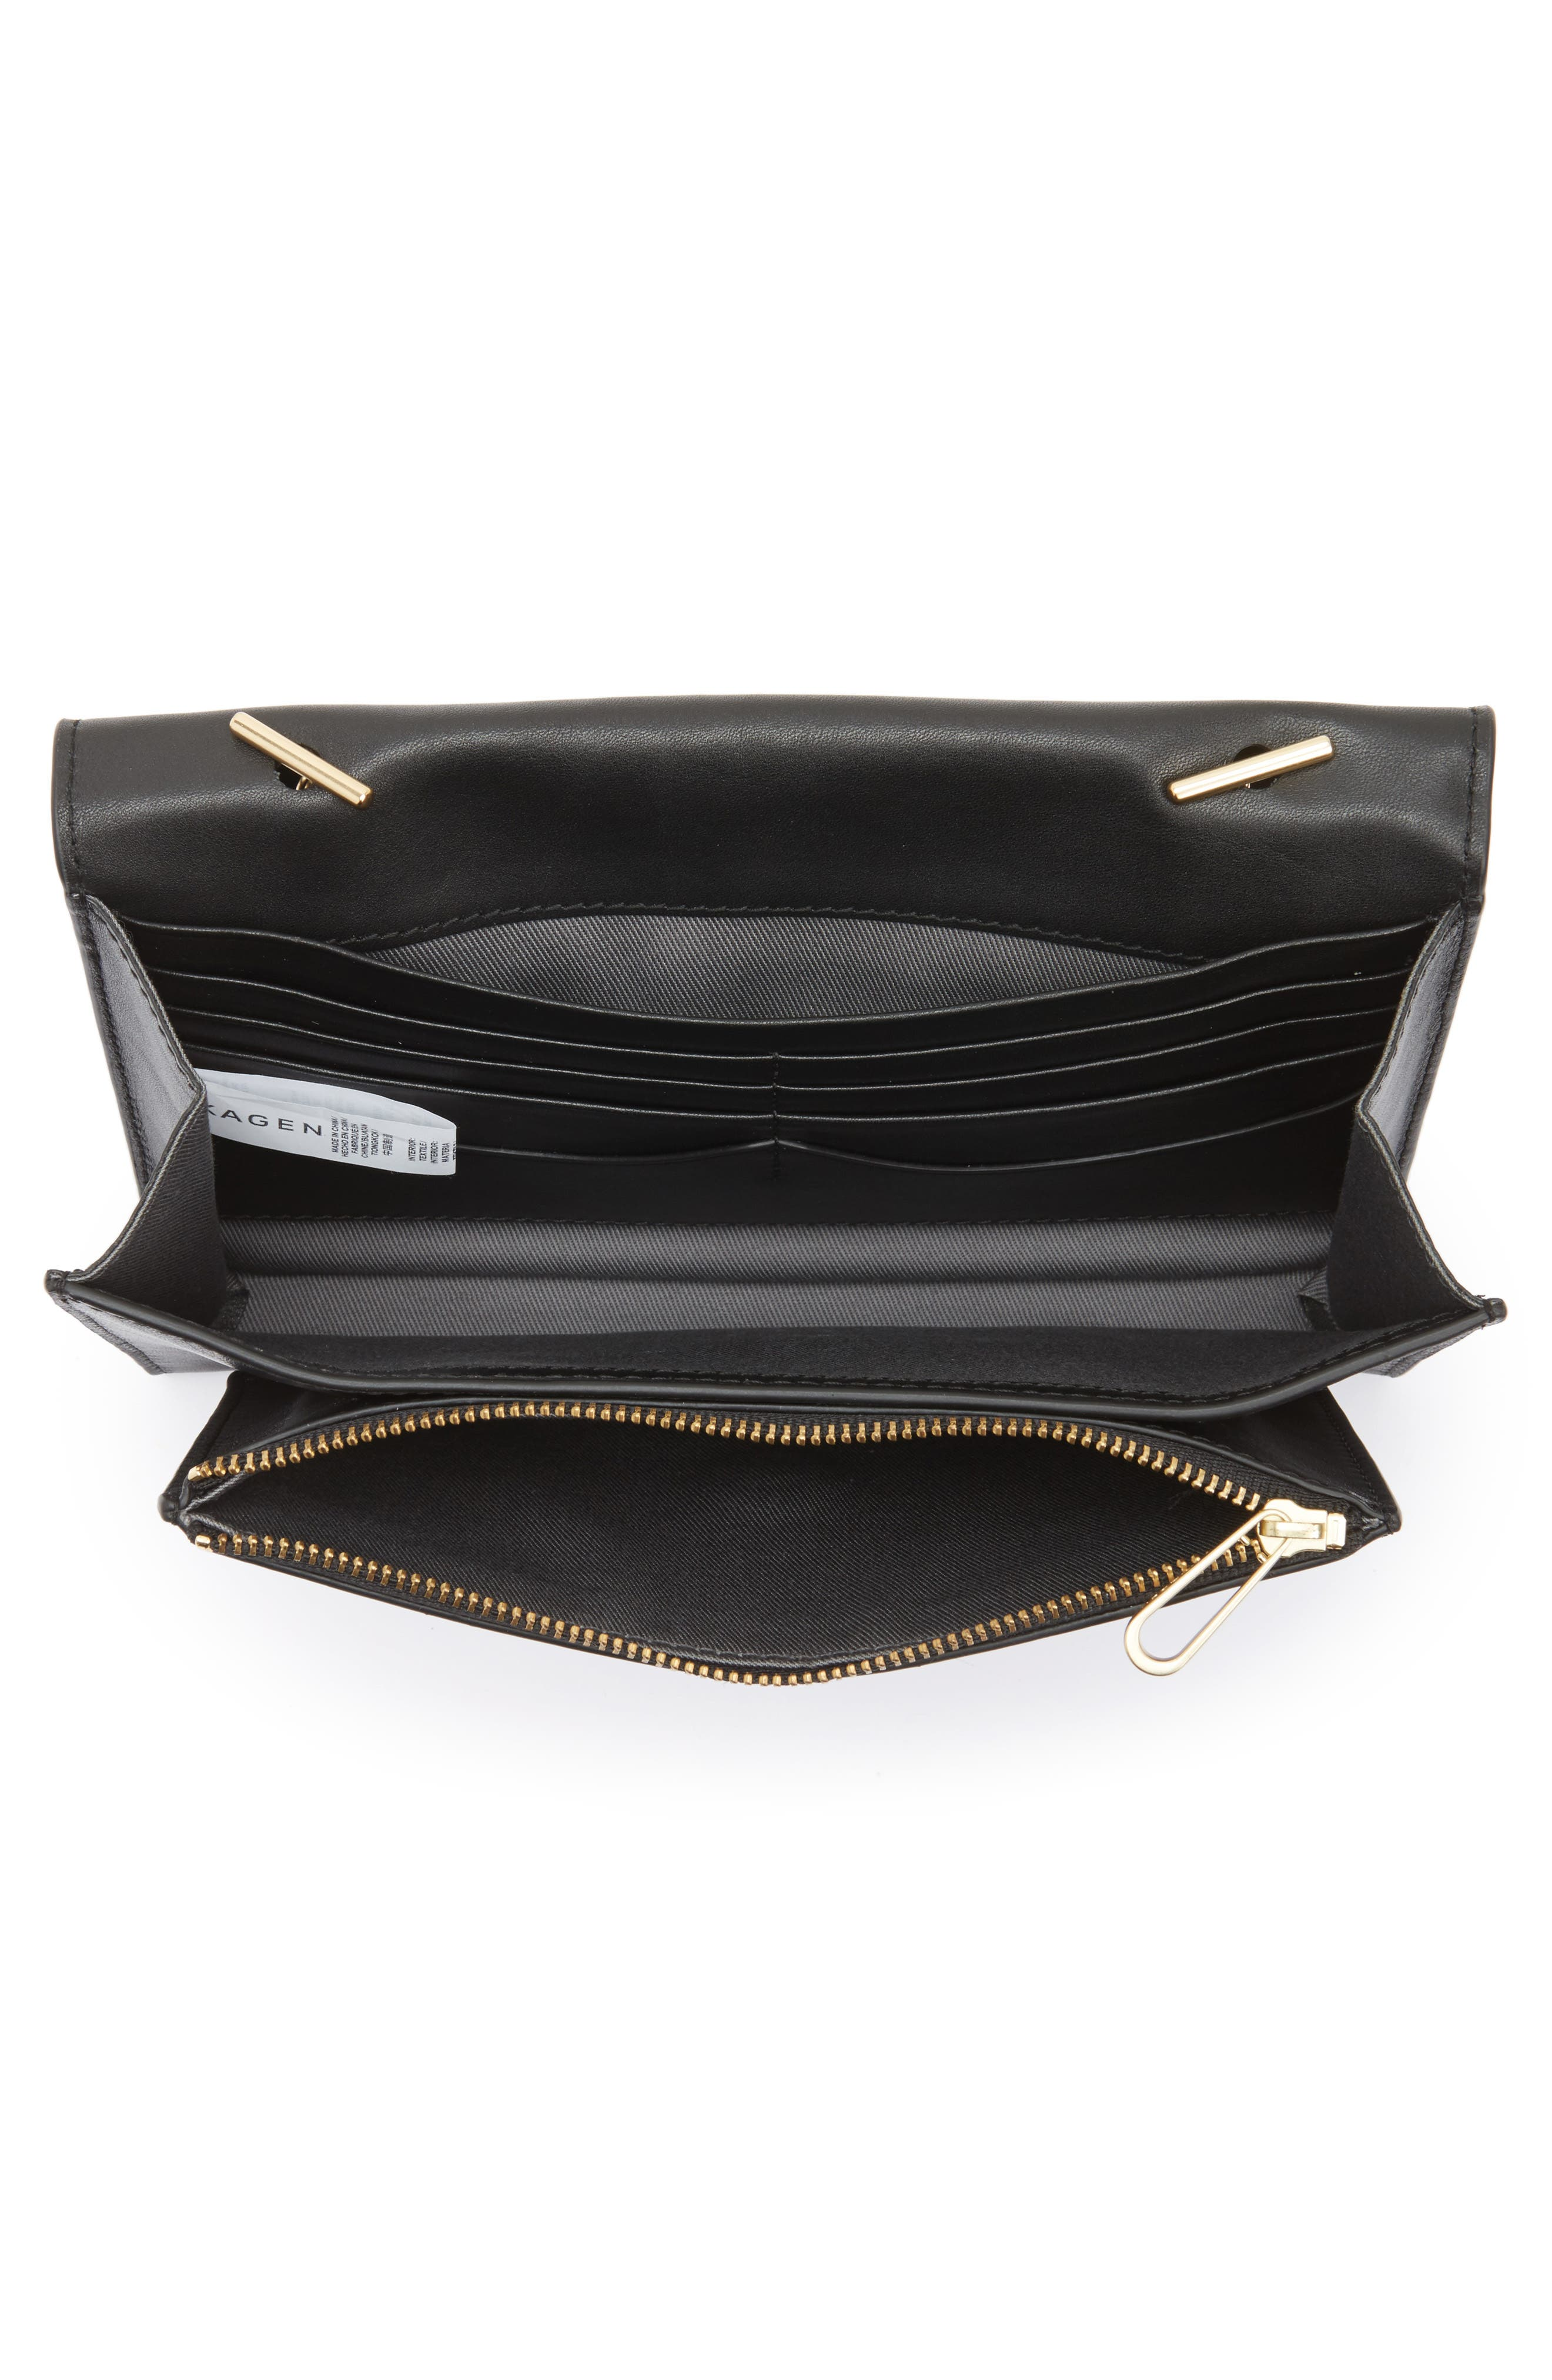 Eryka Leather Envelope Clutch with Detachable Chain,                             Alternate thumbnail 4, color,                             001